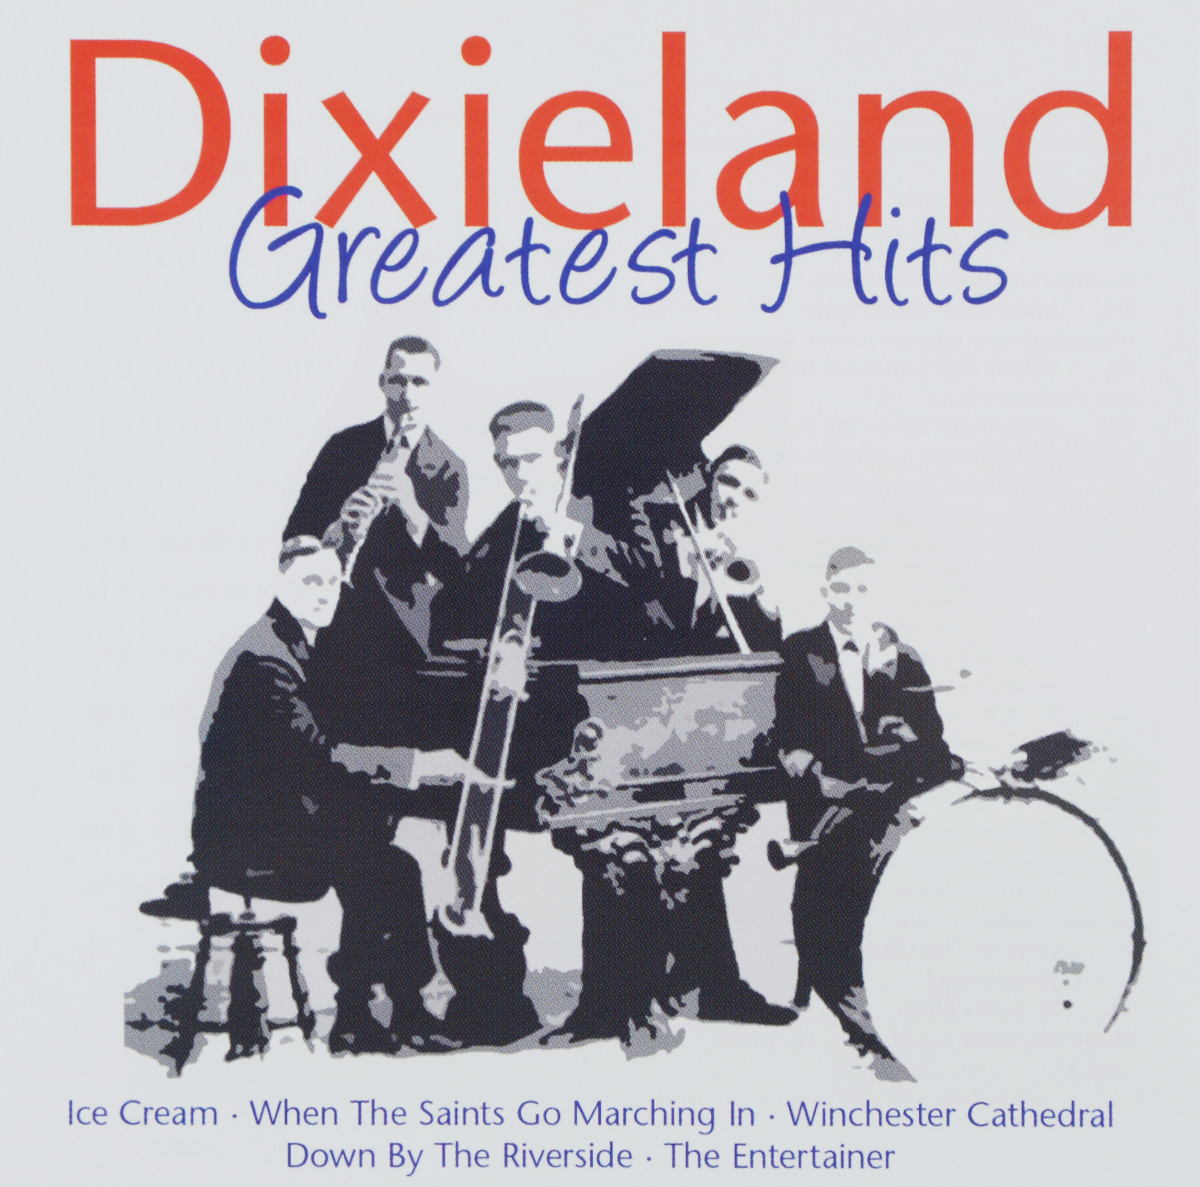 Крис Барбер Dixieland Greatest Hits (2 CD) кэрри андервуд carrie underwood greatest hits decade 1 2 cd